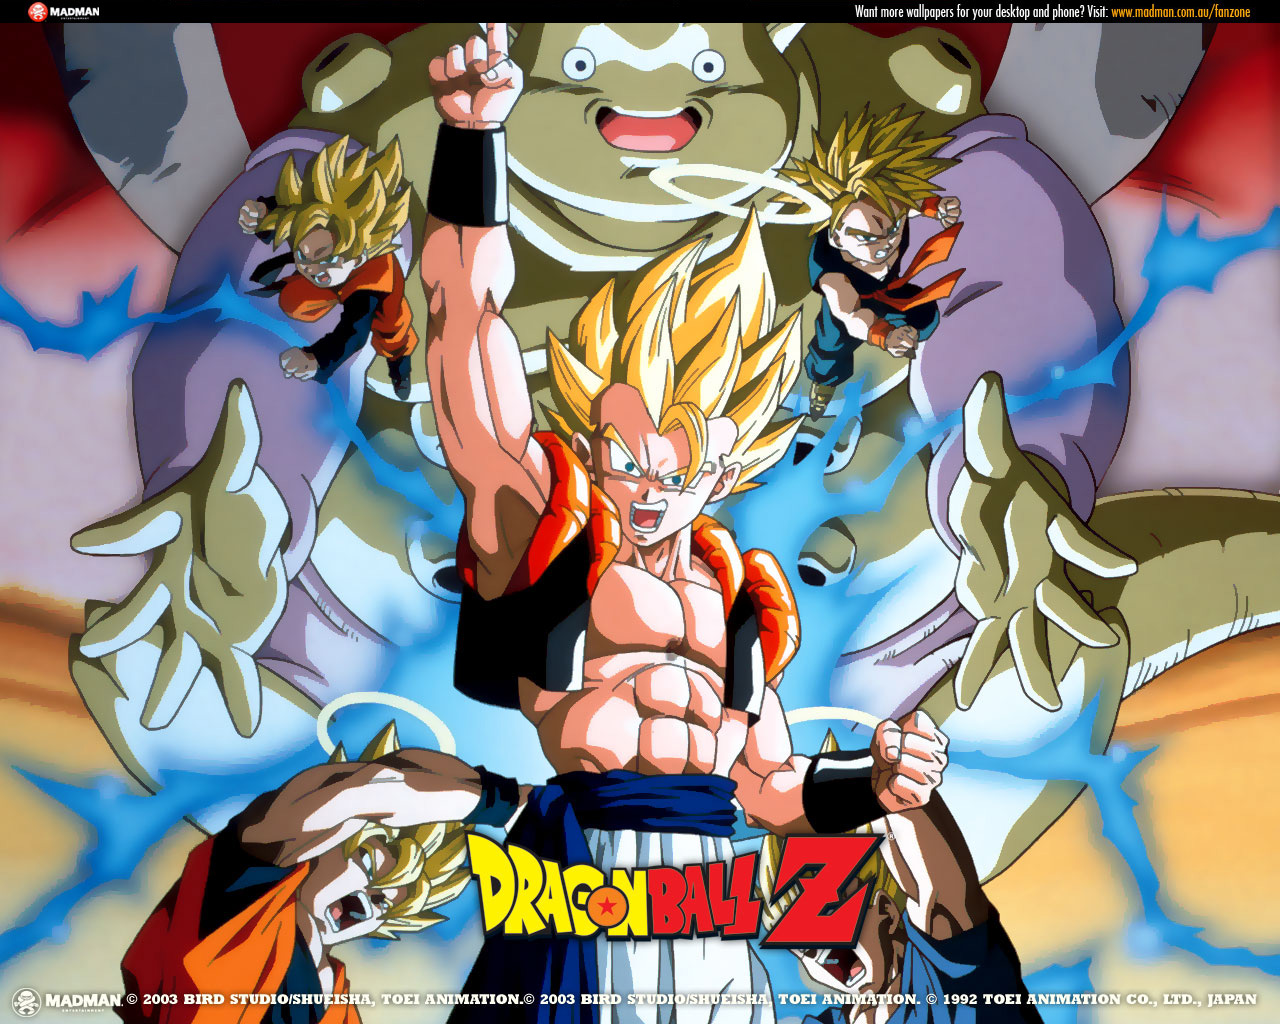 http://4.bp.blogspot.com/-8SG45VIVZd4/Tfj0bsuBkeI/AAAAAAAAAYk/-LWUS-KS_lM/s1600/3586-anime_dragon_ball_z_wallpaper.jpg